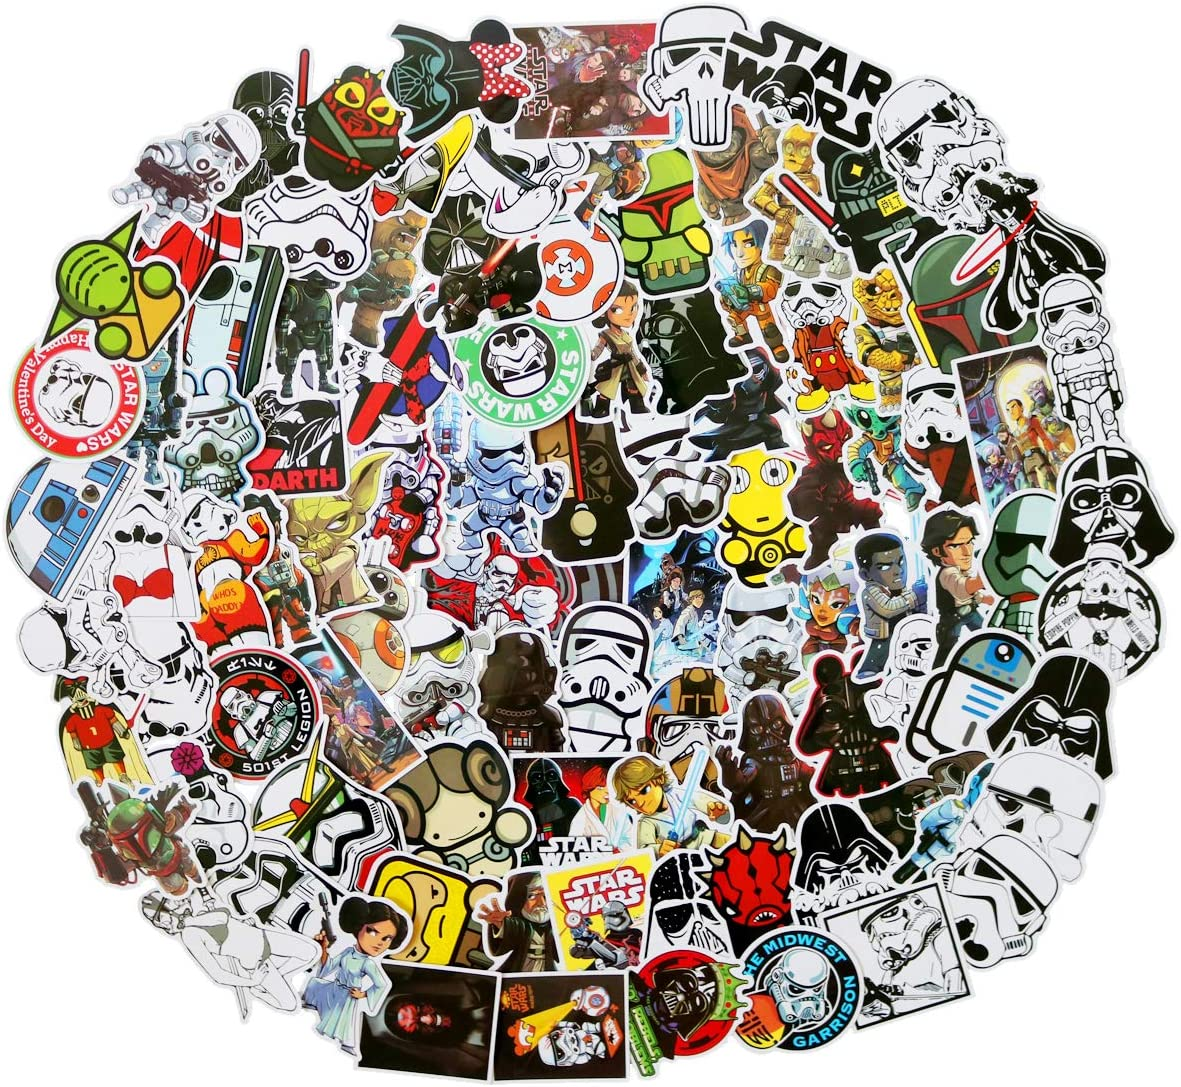 100Pack Star Wars Stickers Set Random Sticker Decals for Water Bottle Laptop Cellphone Bicycle Motorcycle Car Bumper Luggage Travel Case. Etc (Star Wars)